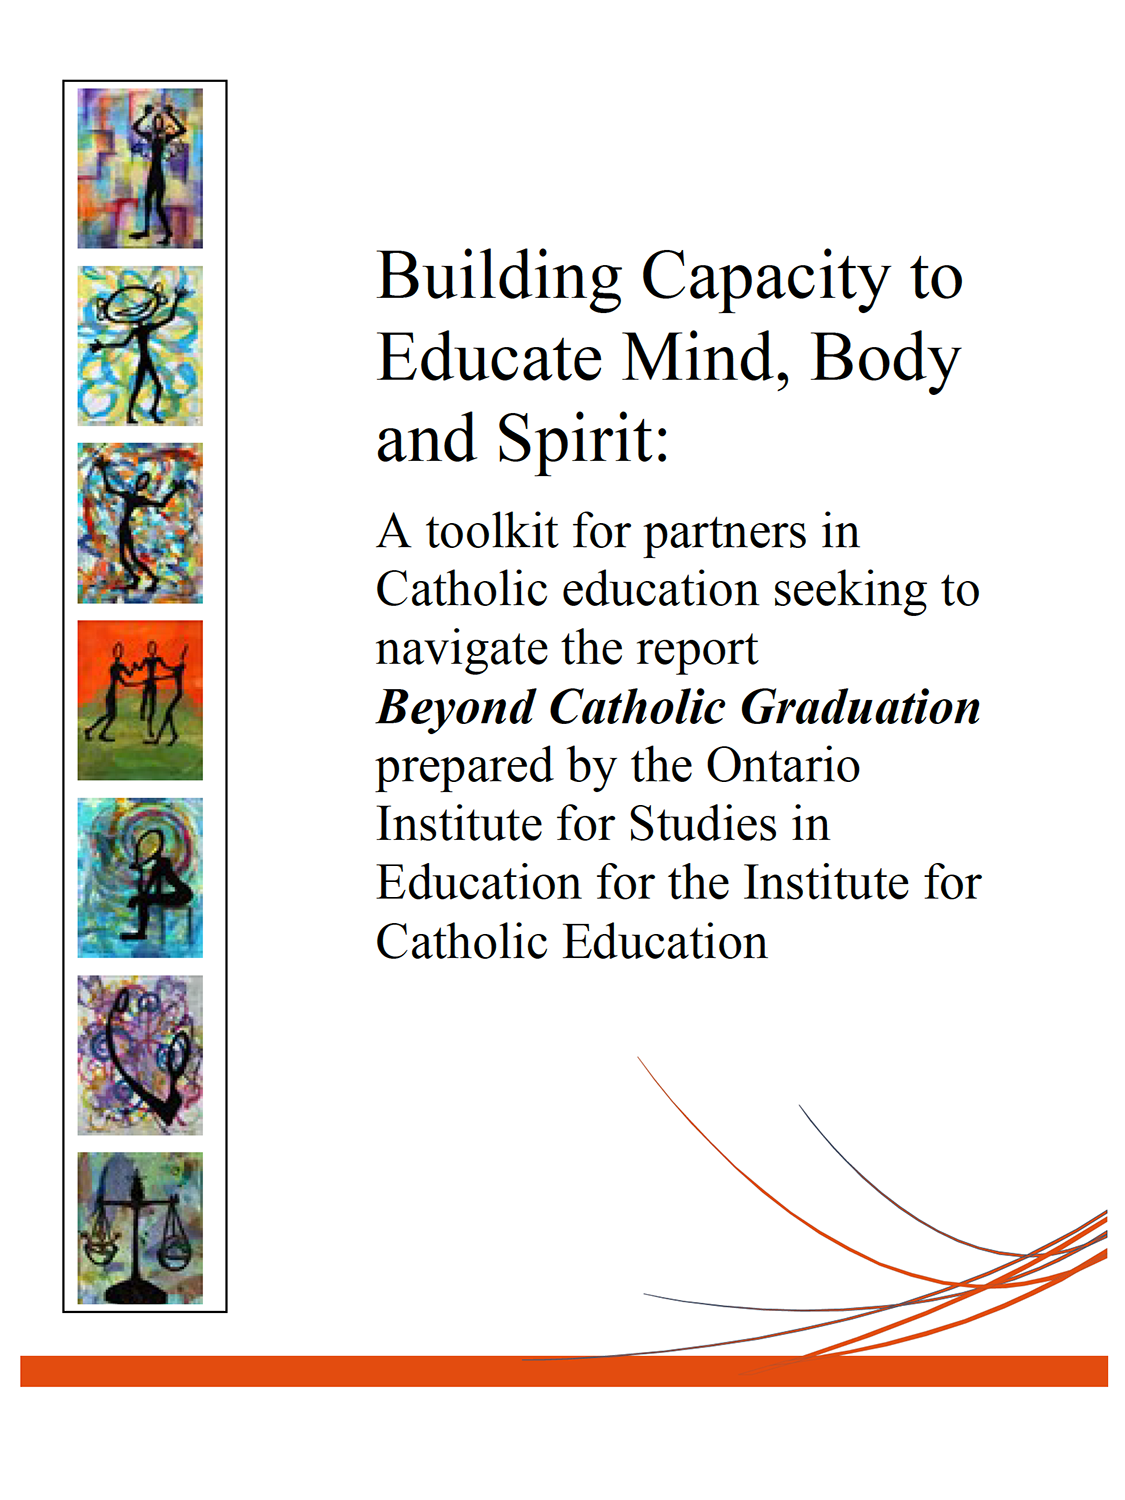 Building Capacity to Educate